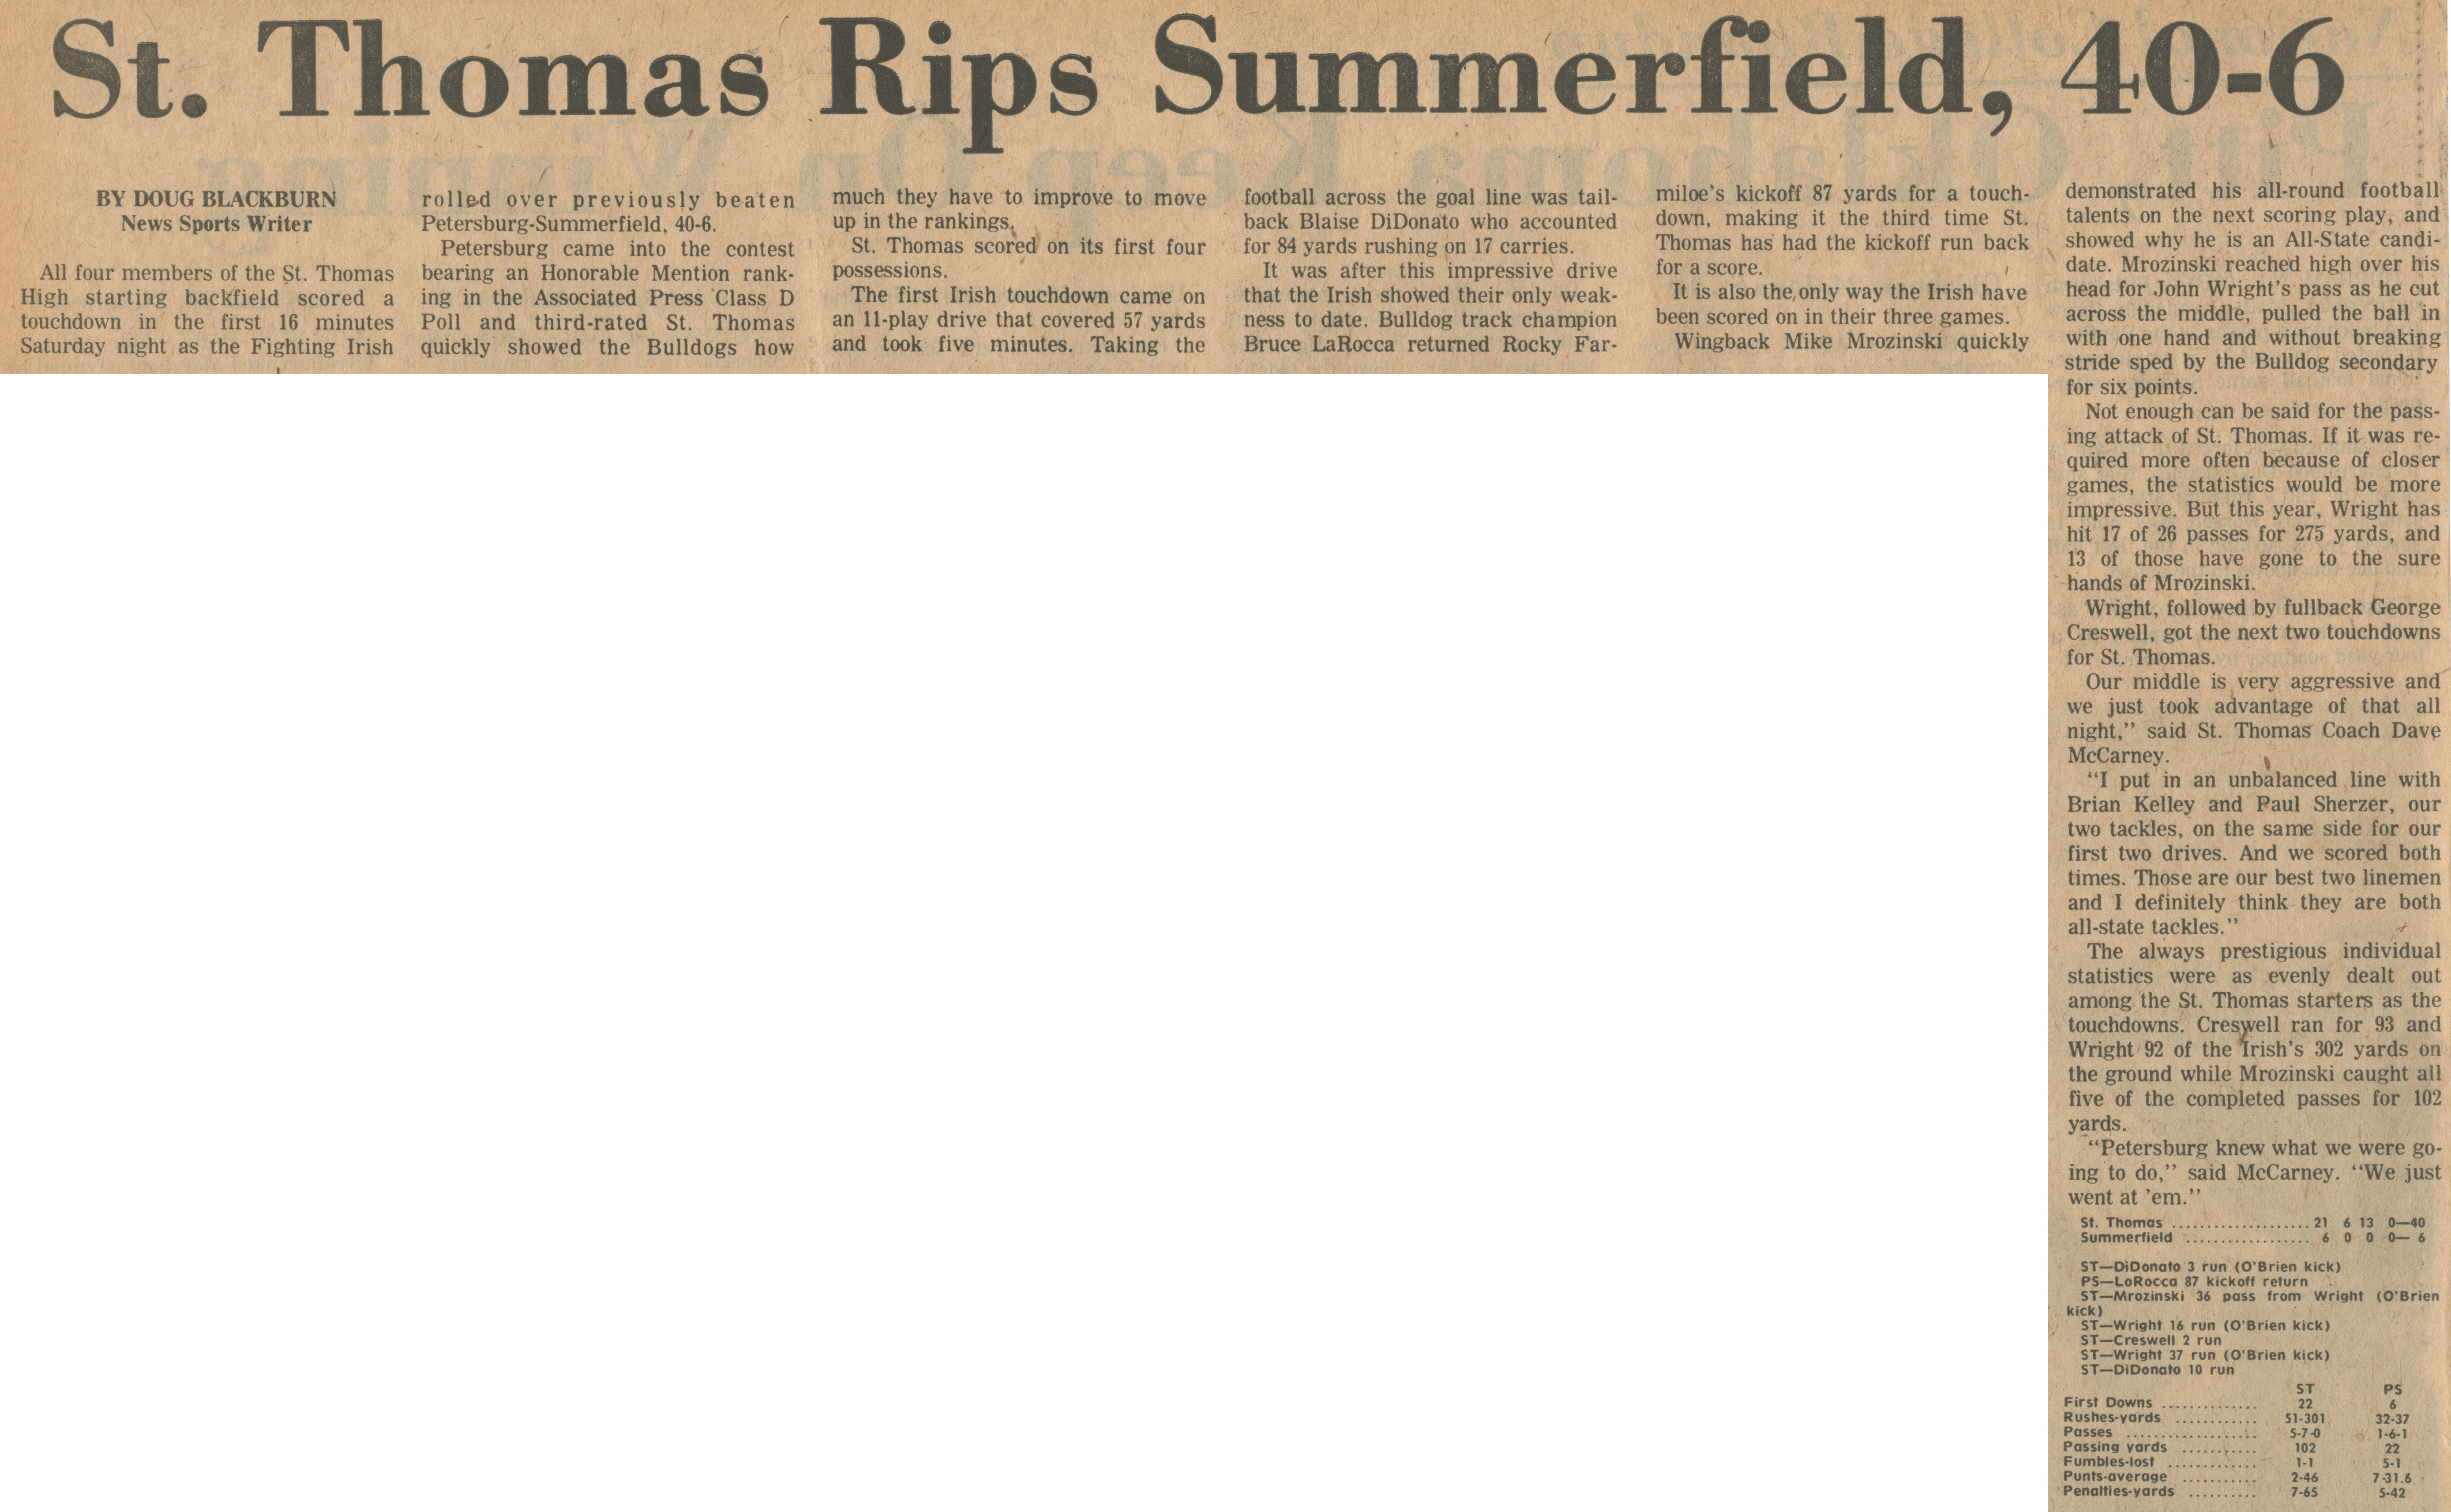 St. Thomas Rips Summerfield, 40-6 image